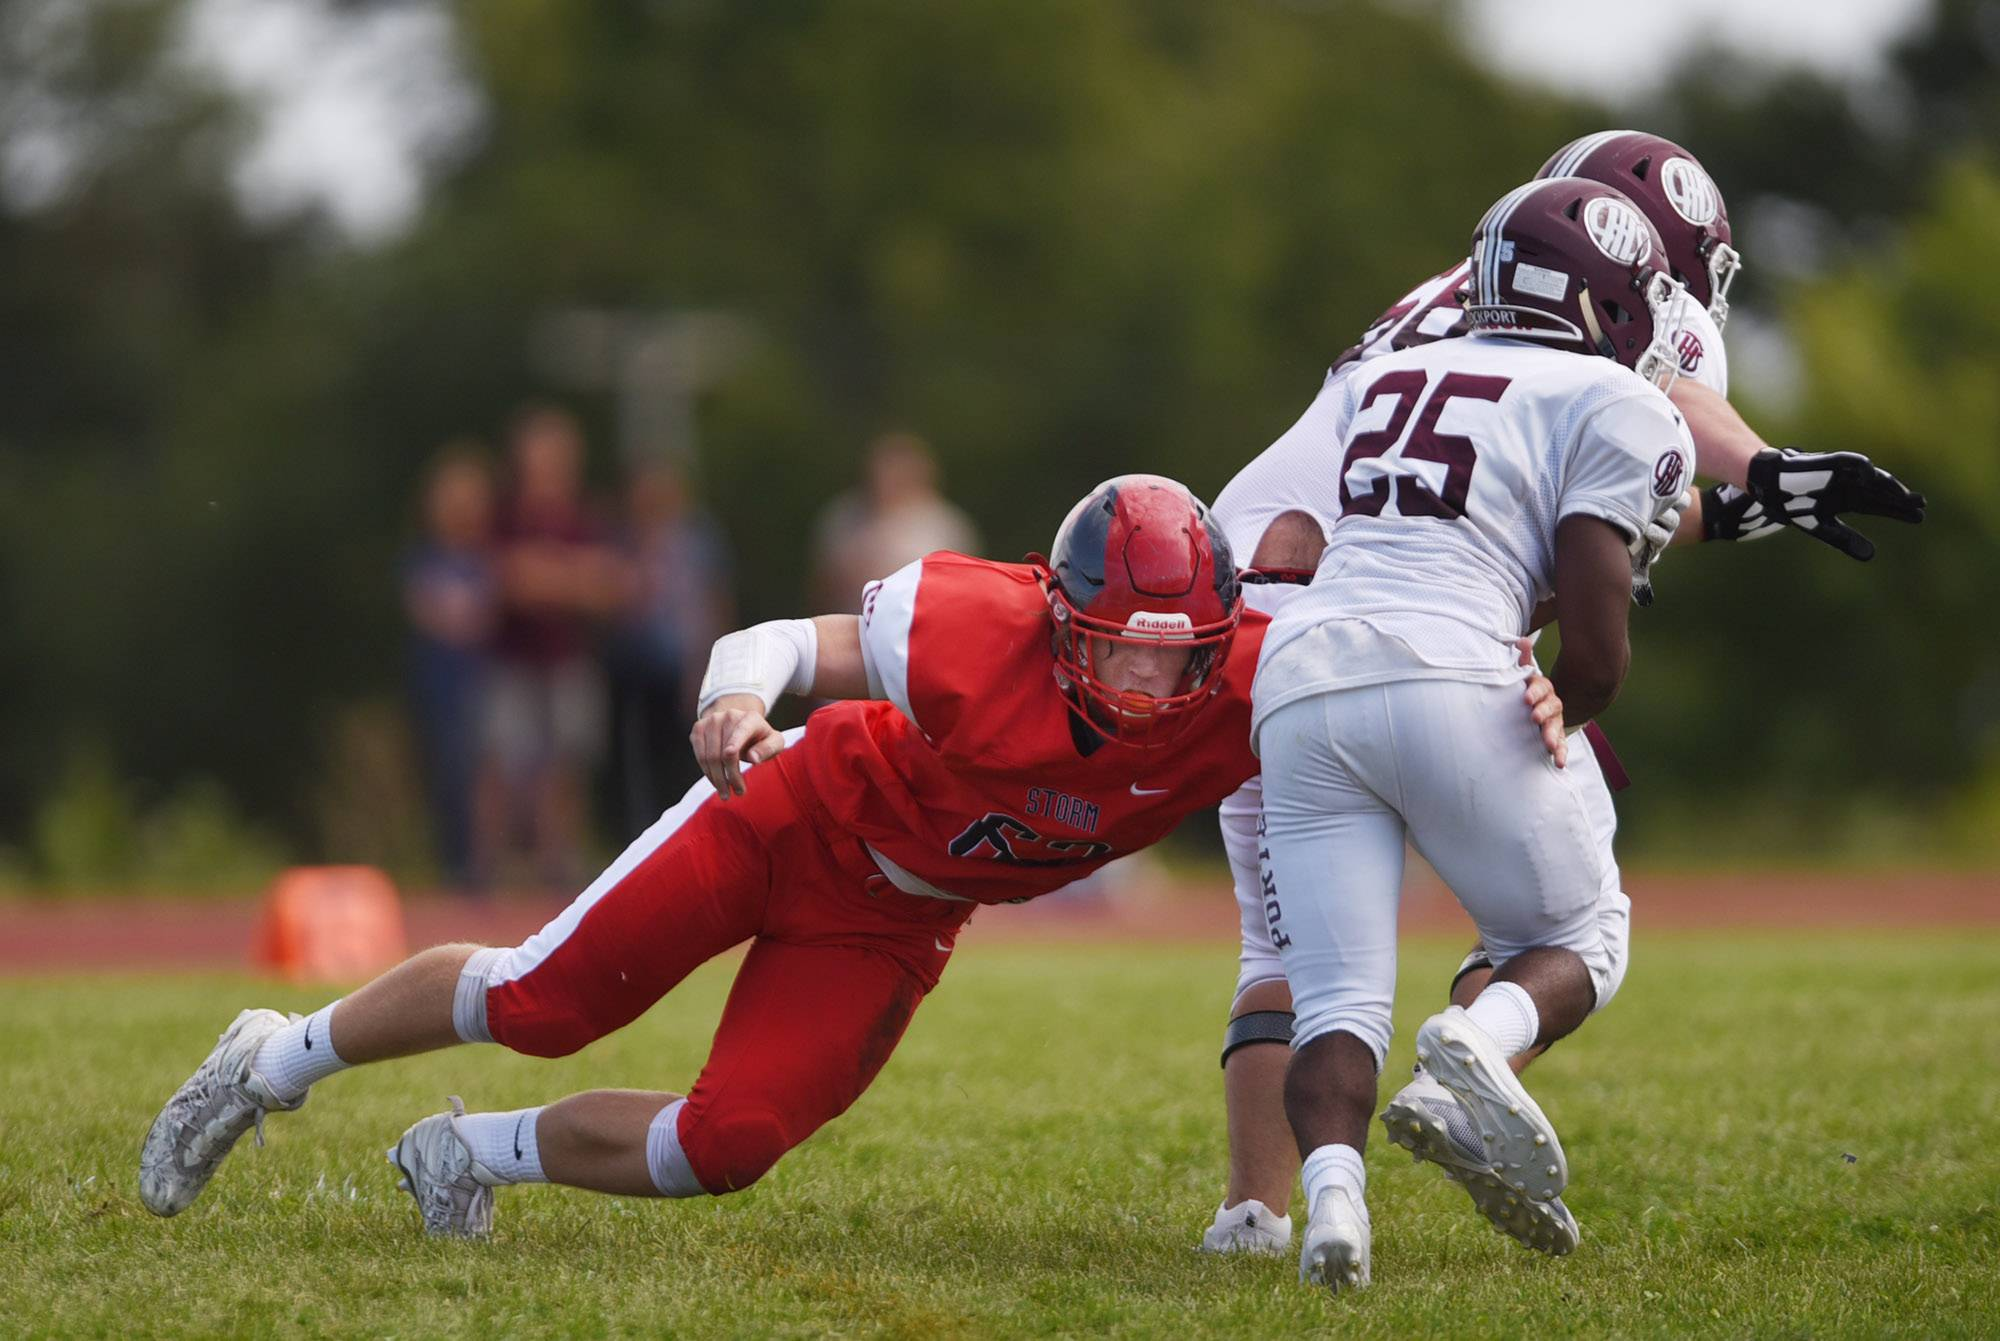 South Elgin's Kyle Viverito wraps up Lockport's Tavares Moore Saturday in South Elgin.